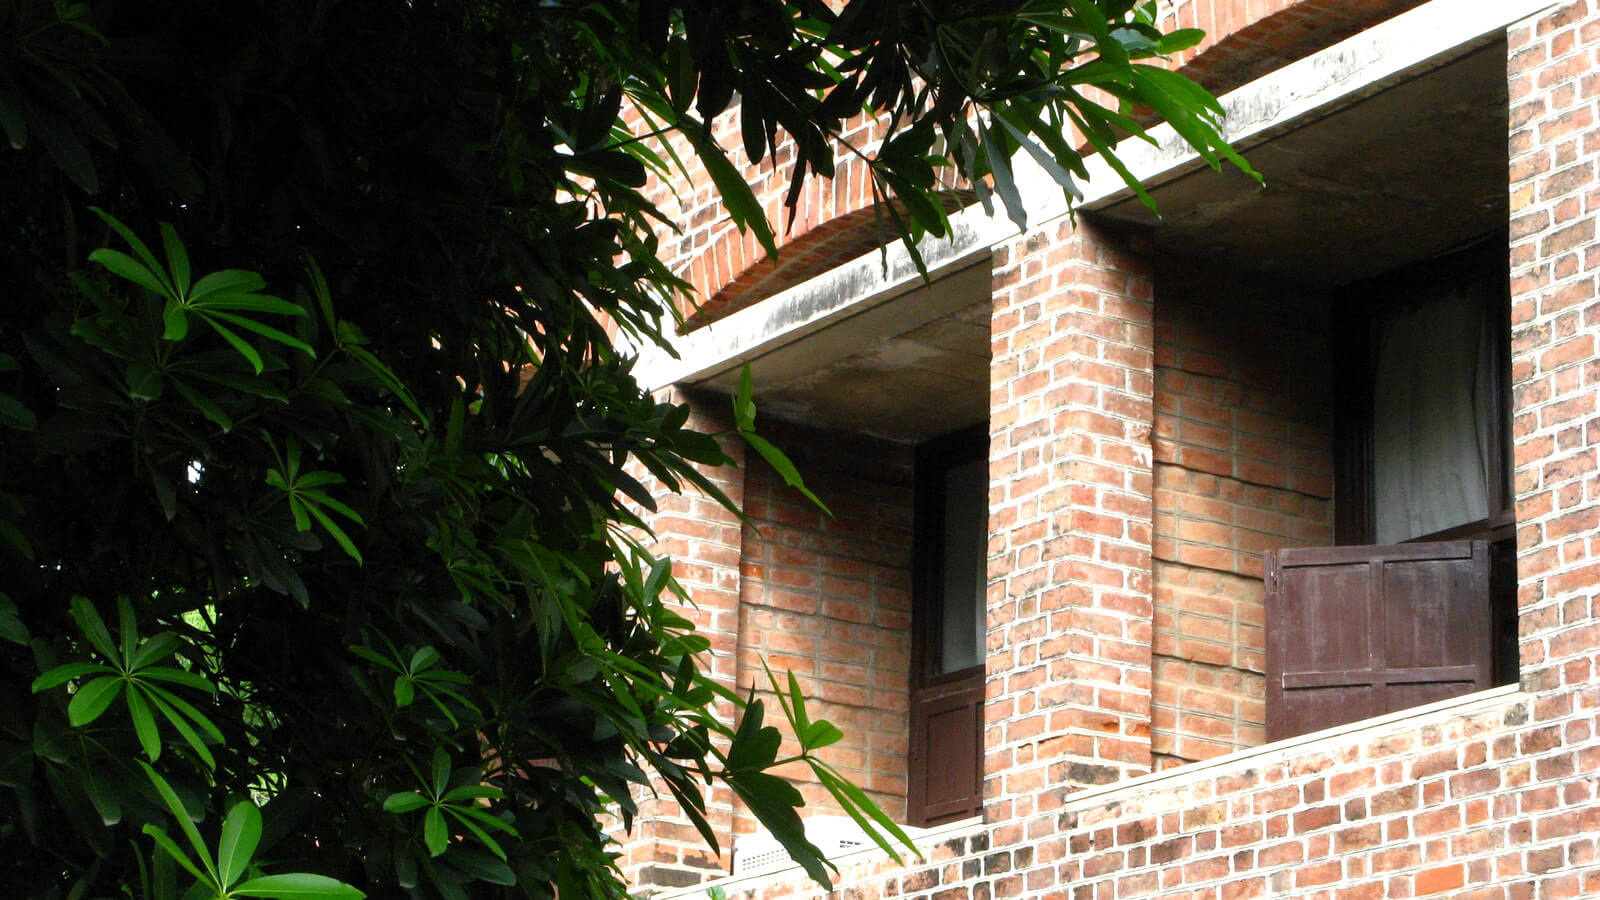 The dorm no. 15-D was used as a model to attempt restoration efforts | IIM Ahmedabad Demolition | Prof Jaimini Mehta | STIRworld